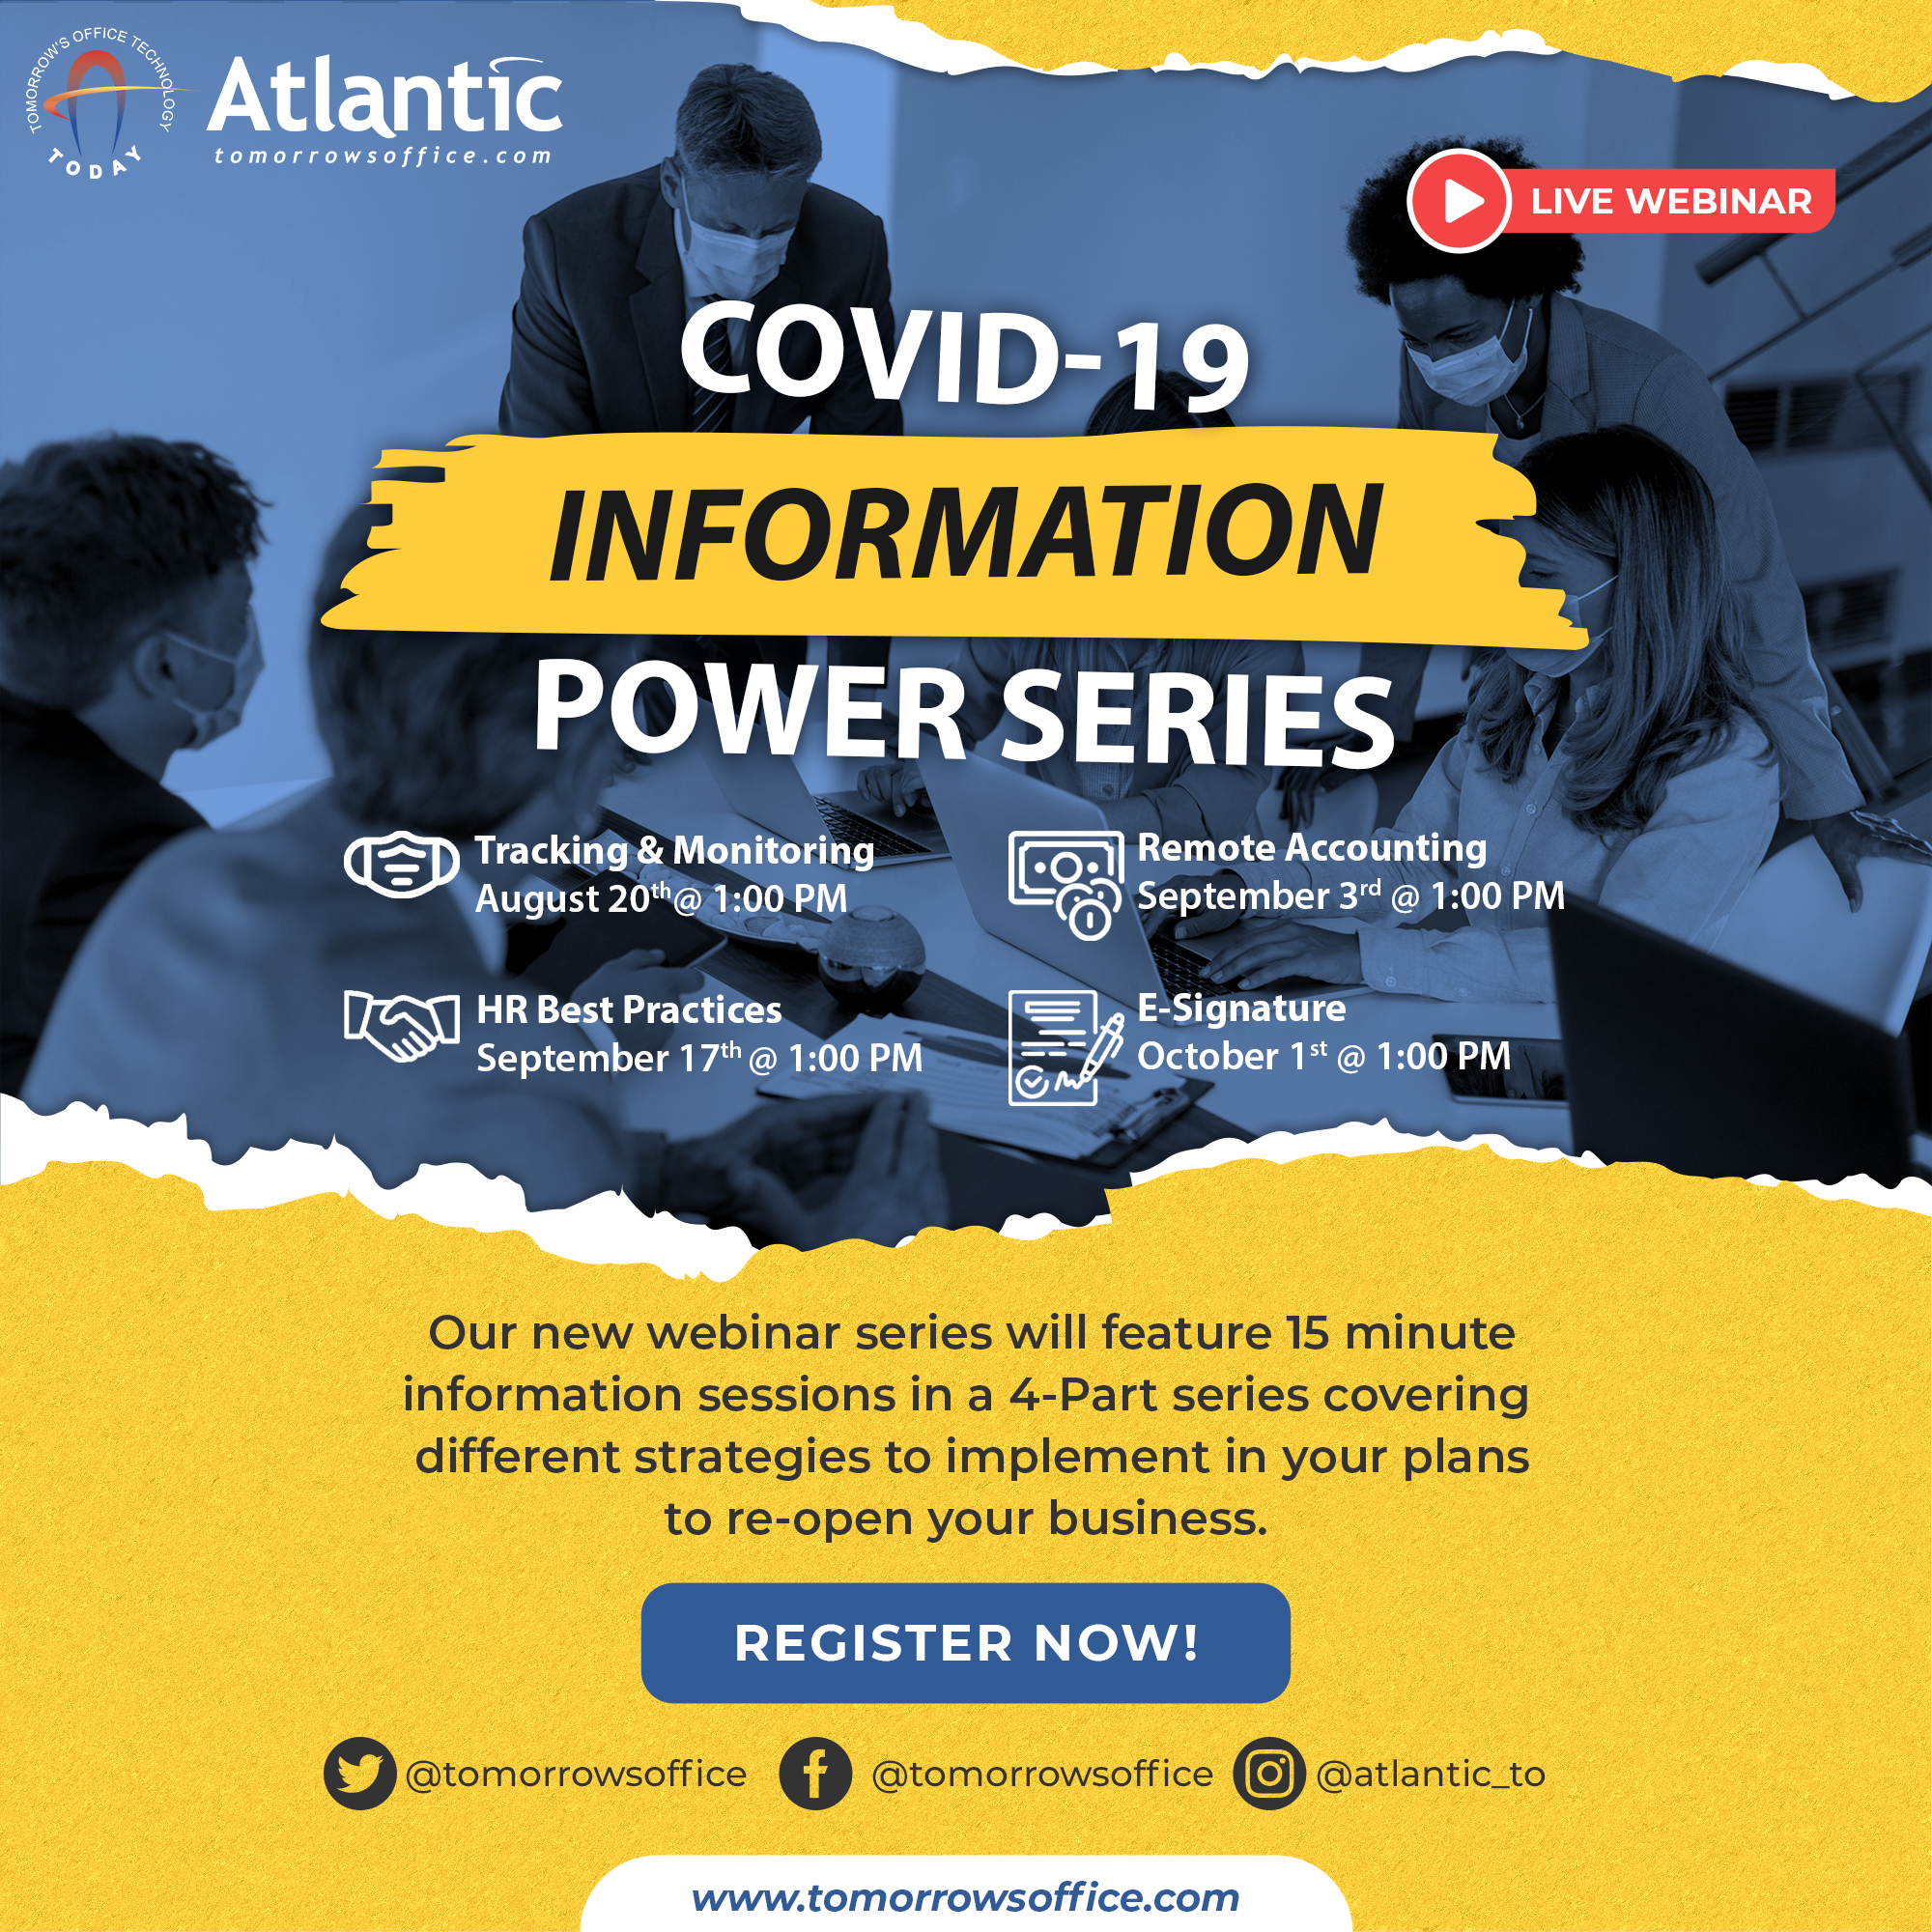 Join our COVID-19 Information Power Series